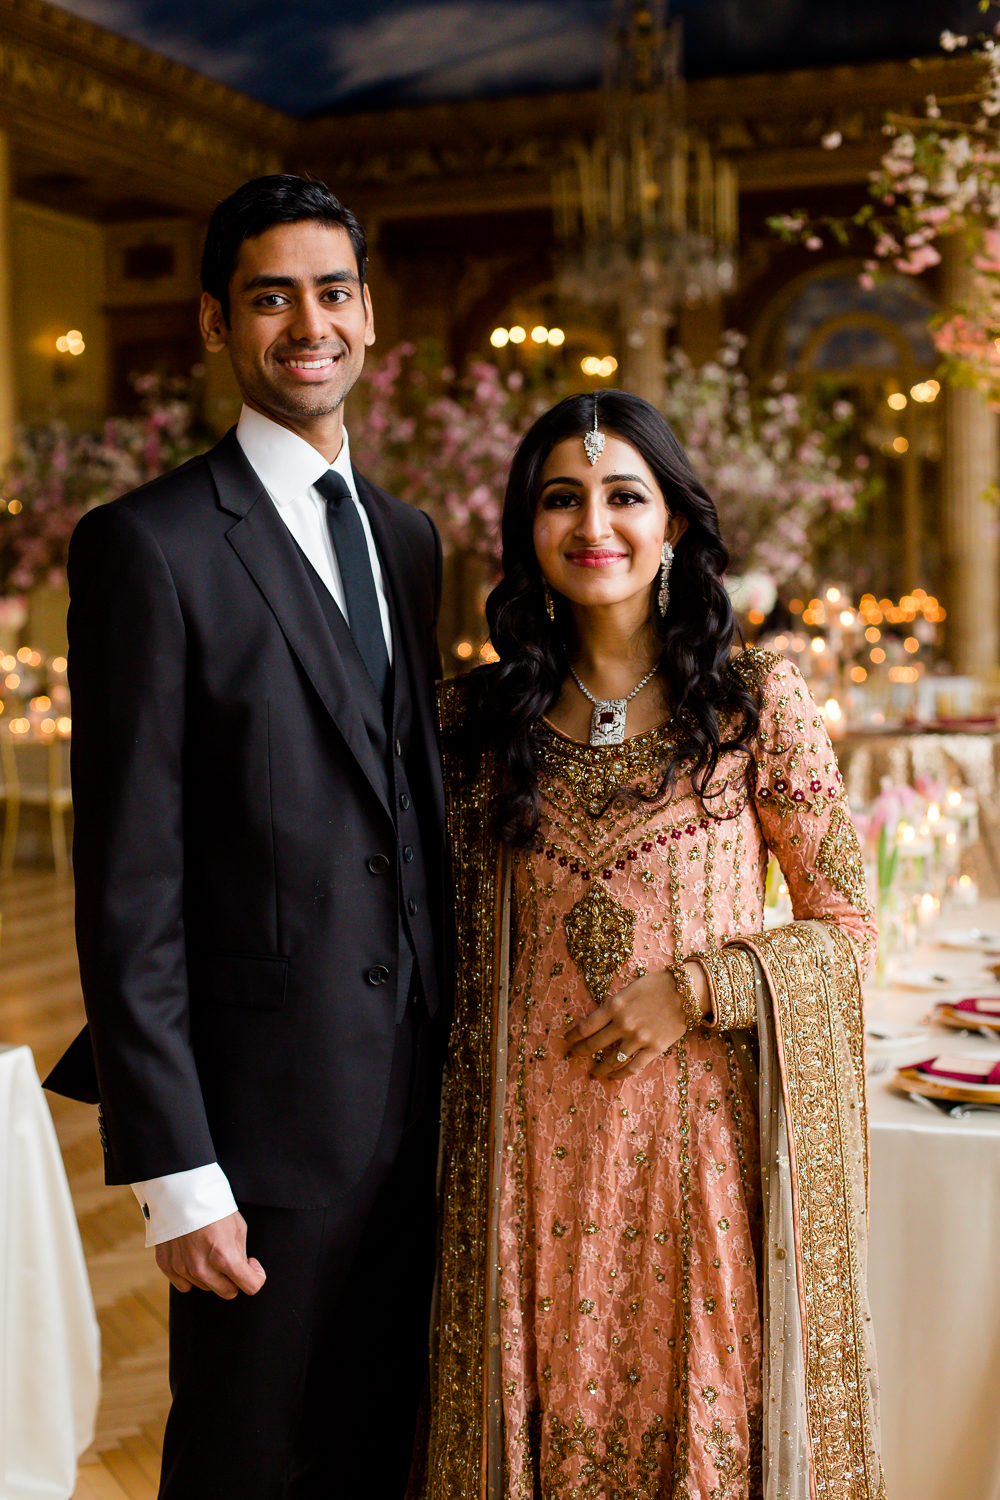 A bride and groom pose in the ballroom of their wedding reception. The bride is dressed in traditional Pakistani dress. The groom is in a suit.